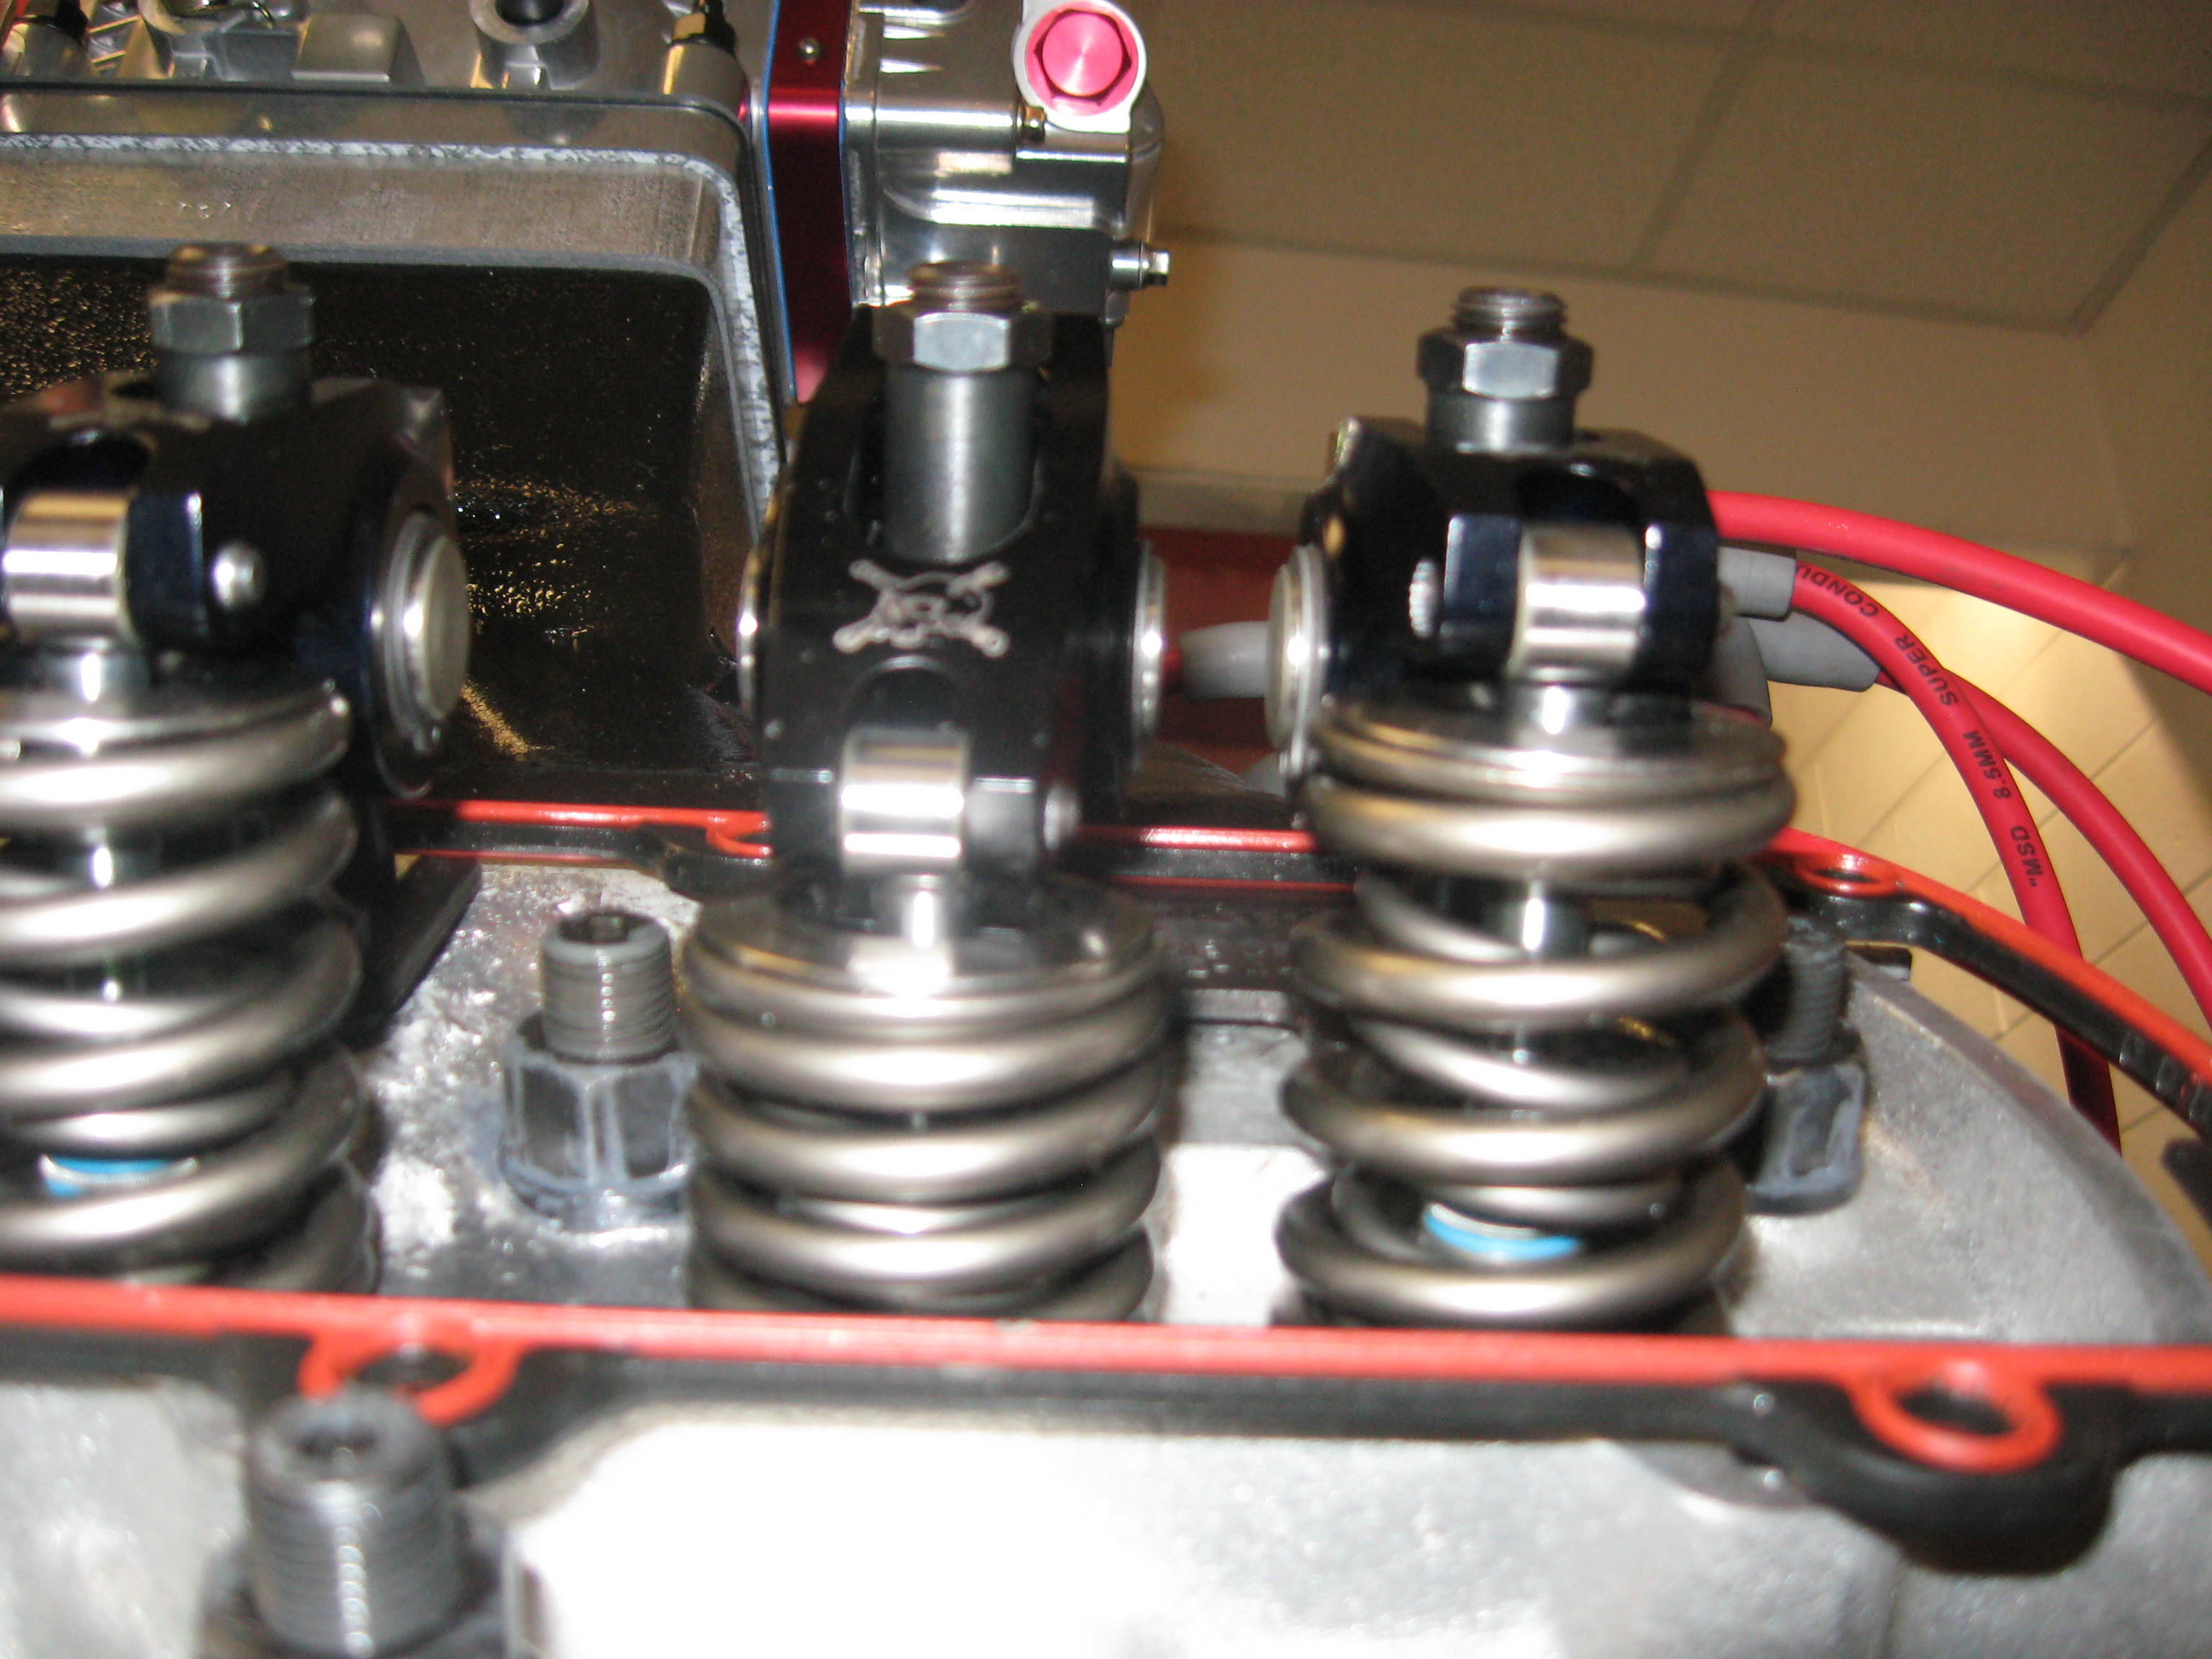 Cjs Pump Gas 463 Sbo Olds 403 Distributor Wiring Diagram Block 4375 Bore Pistons 003 In The Hole Square Decked To 9310 Polished Lifter Valley Oil Restrictors Bores Drains